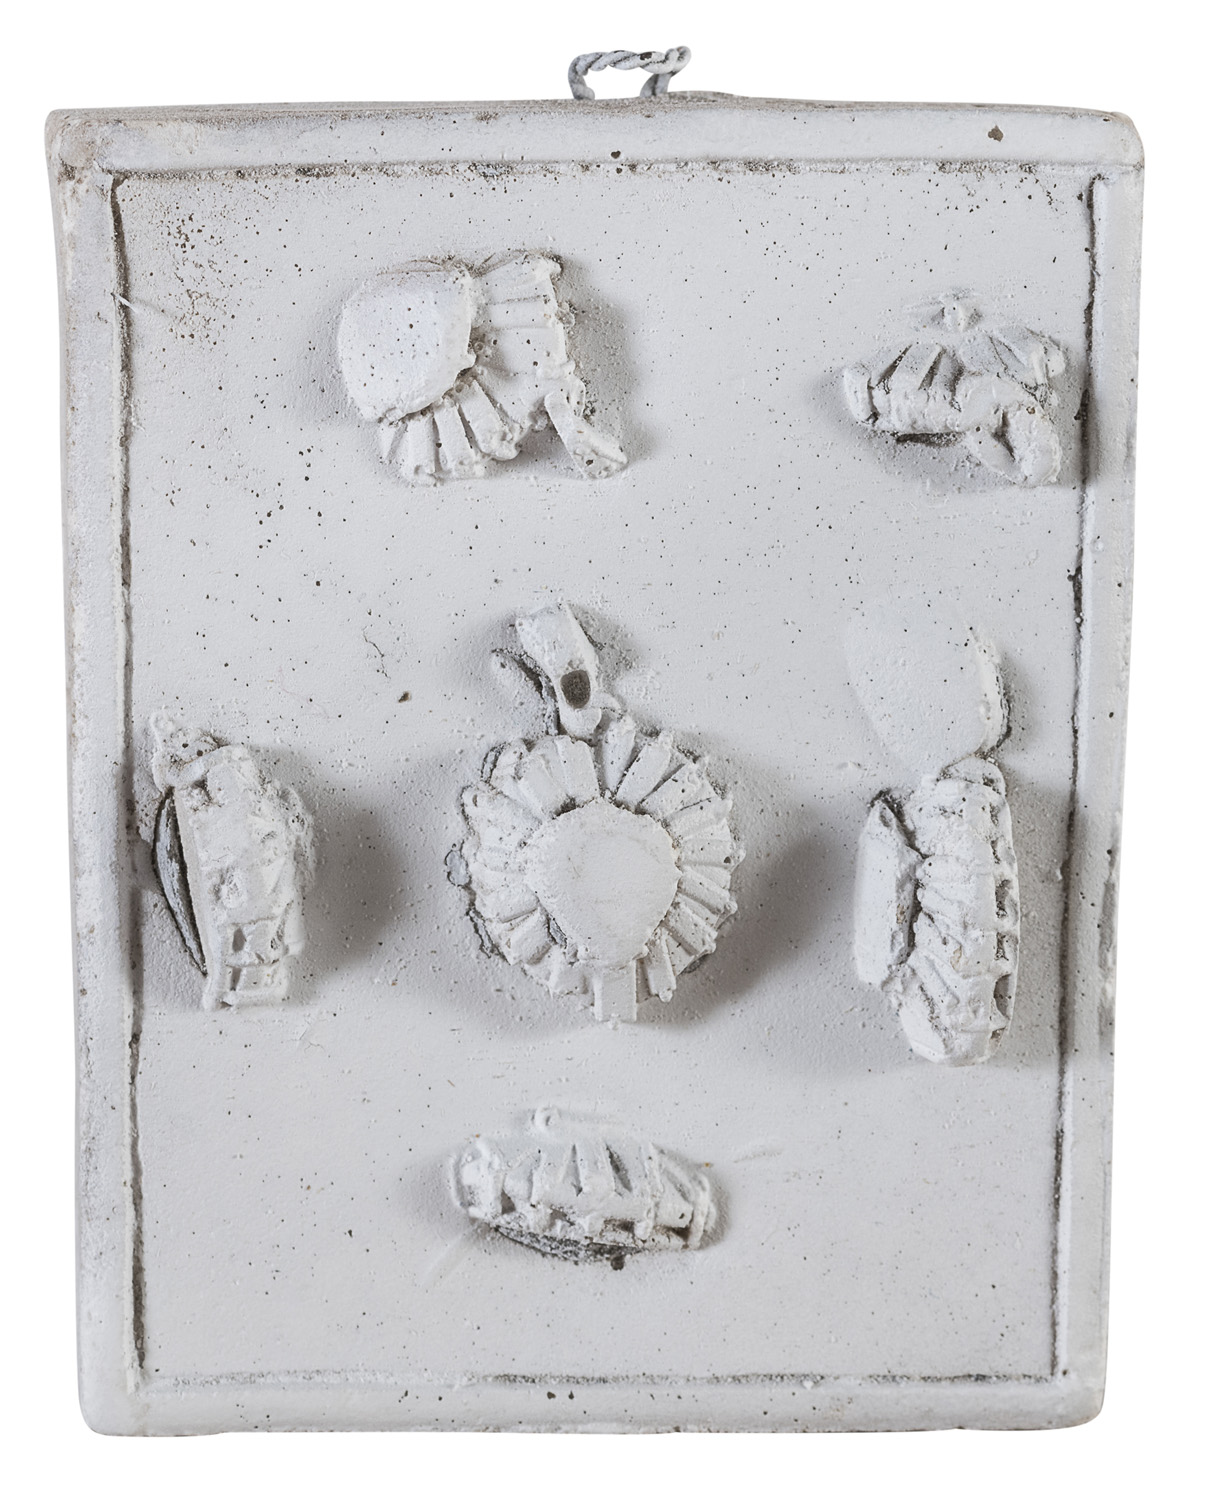 TWO MOLDS BY GIULIO ZANCOLLA - Image 2 of 2